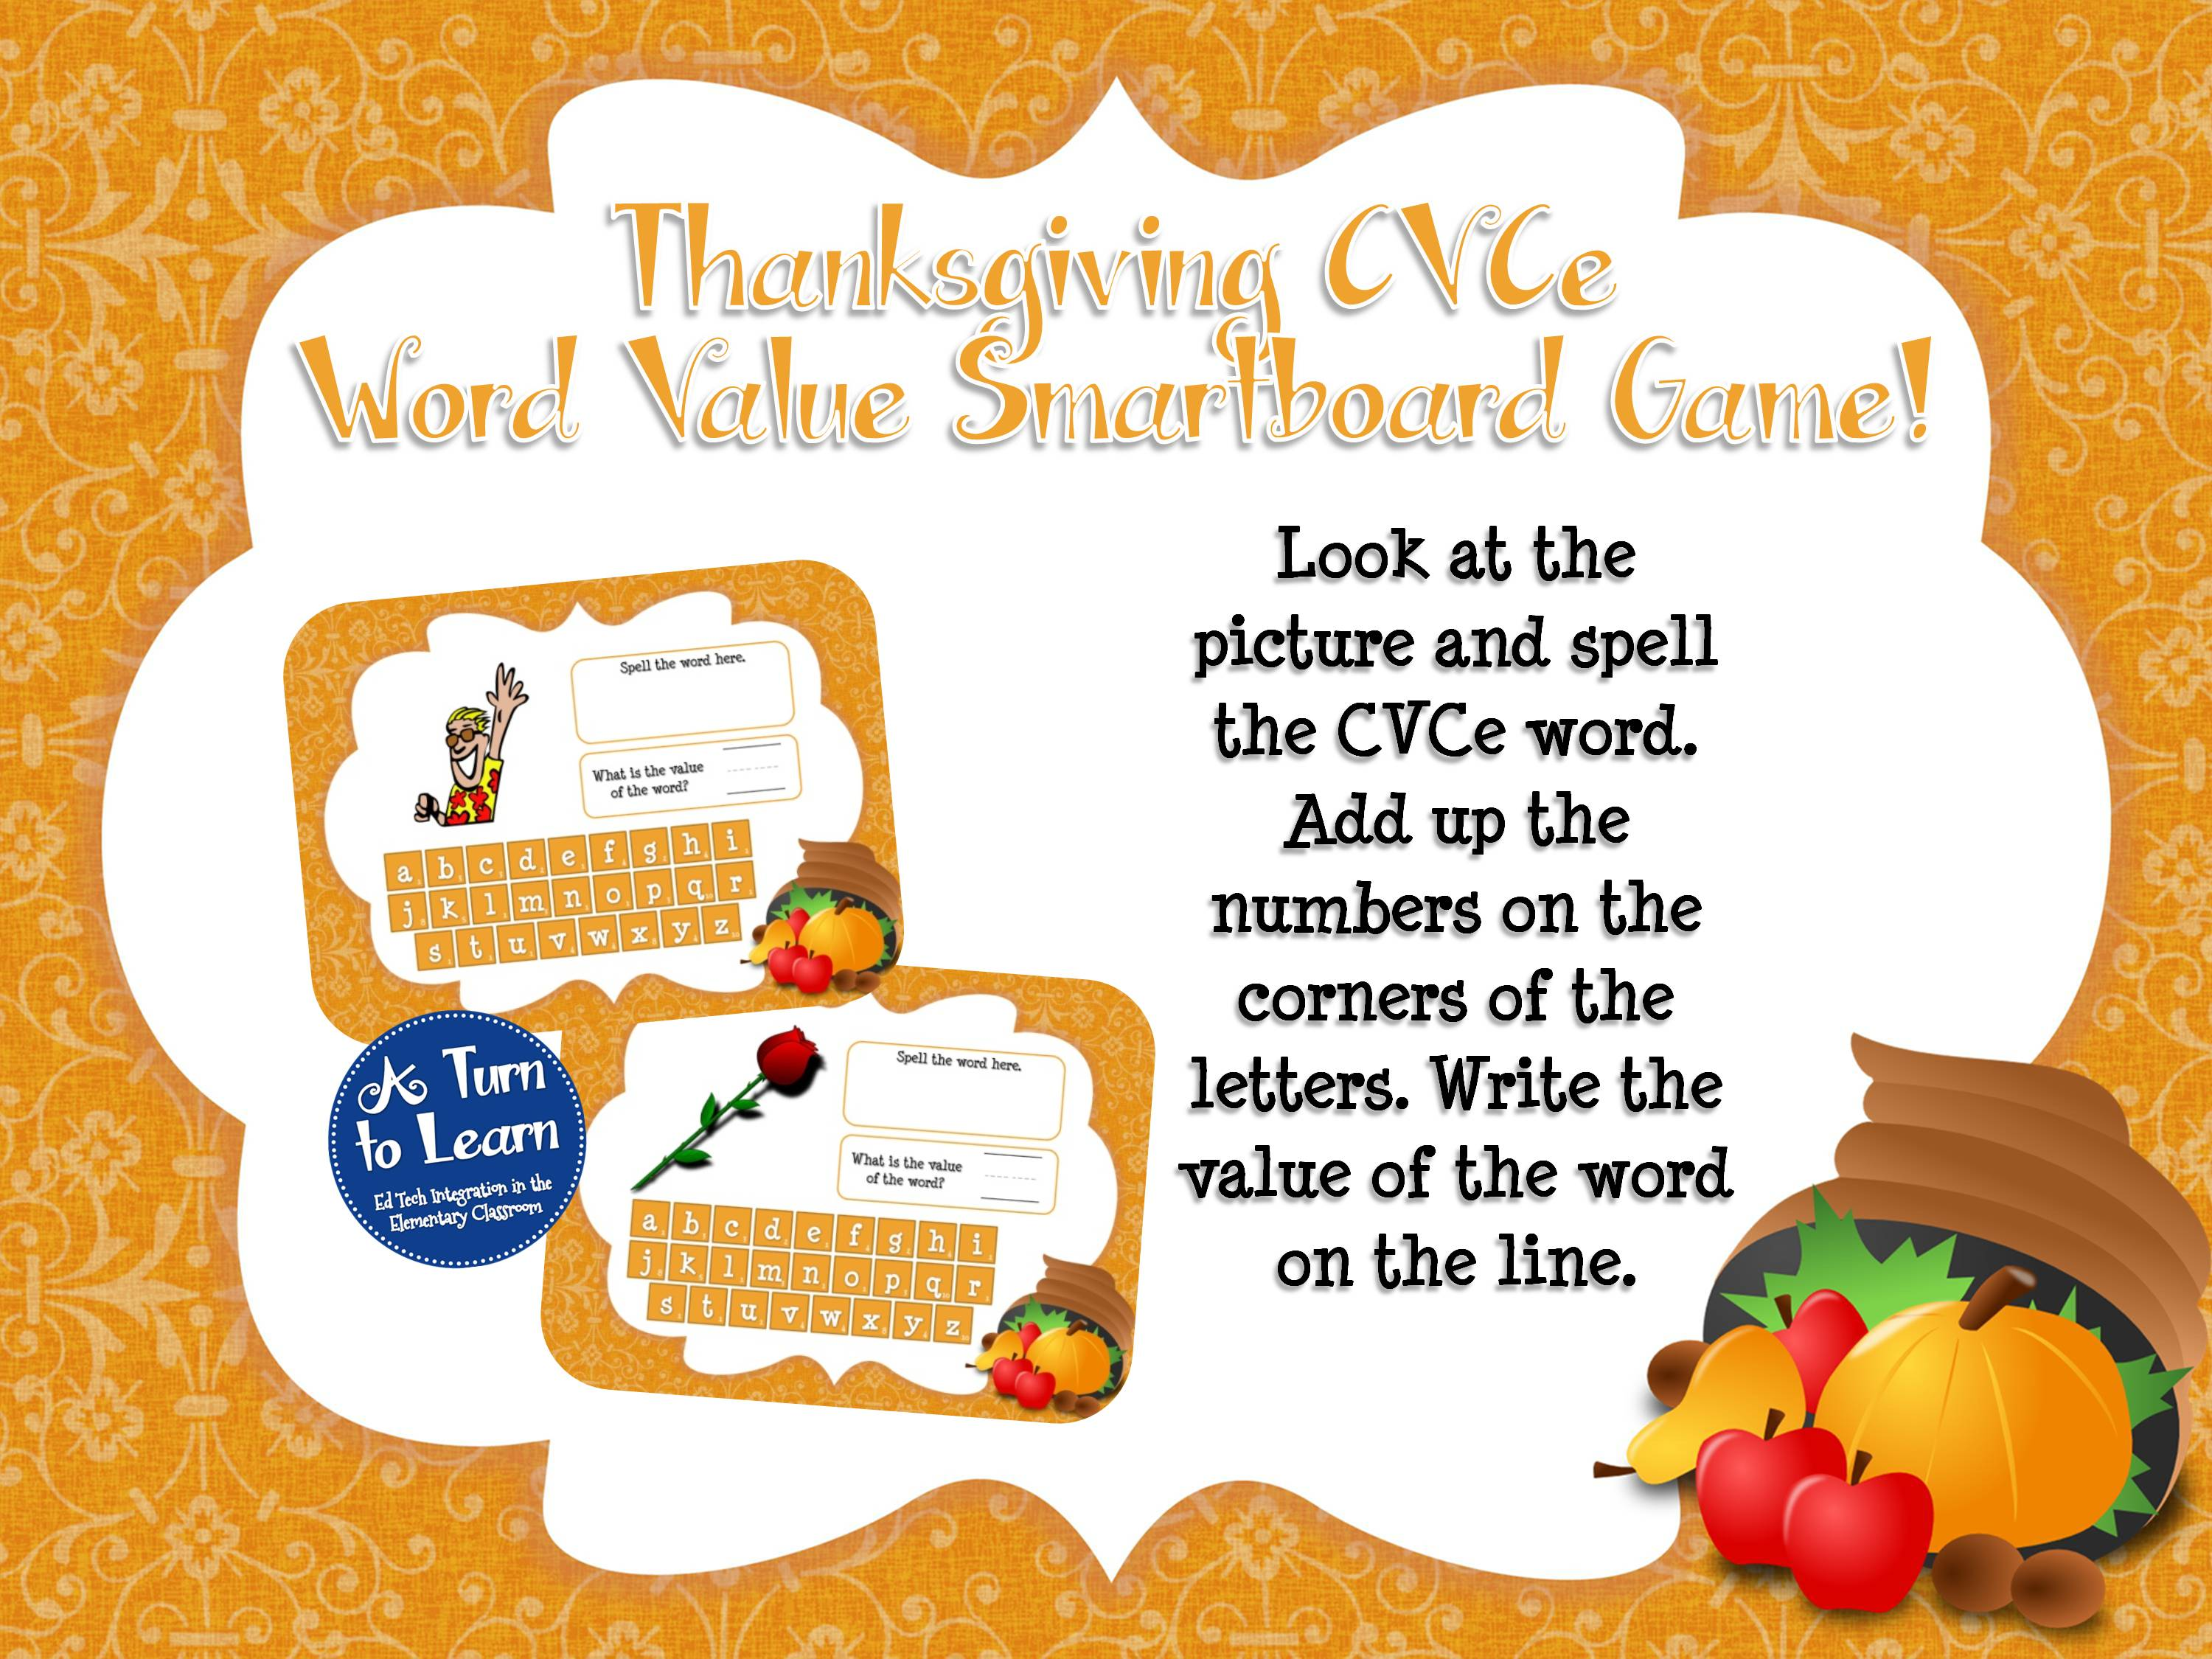 Thanksgiving themed CVCe word smartboard game for practicing spelling and math skills together!